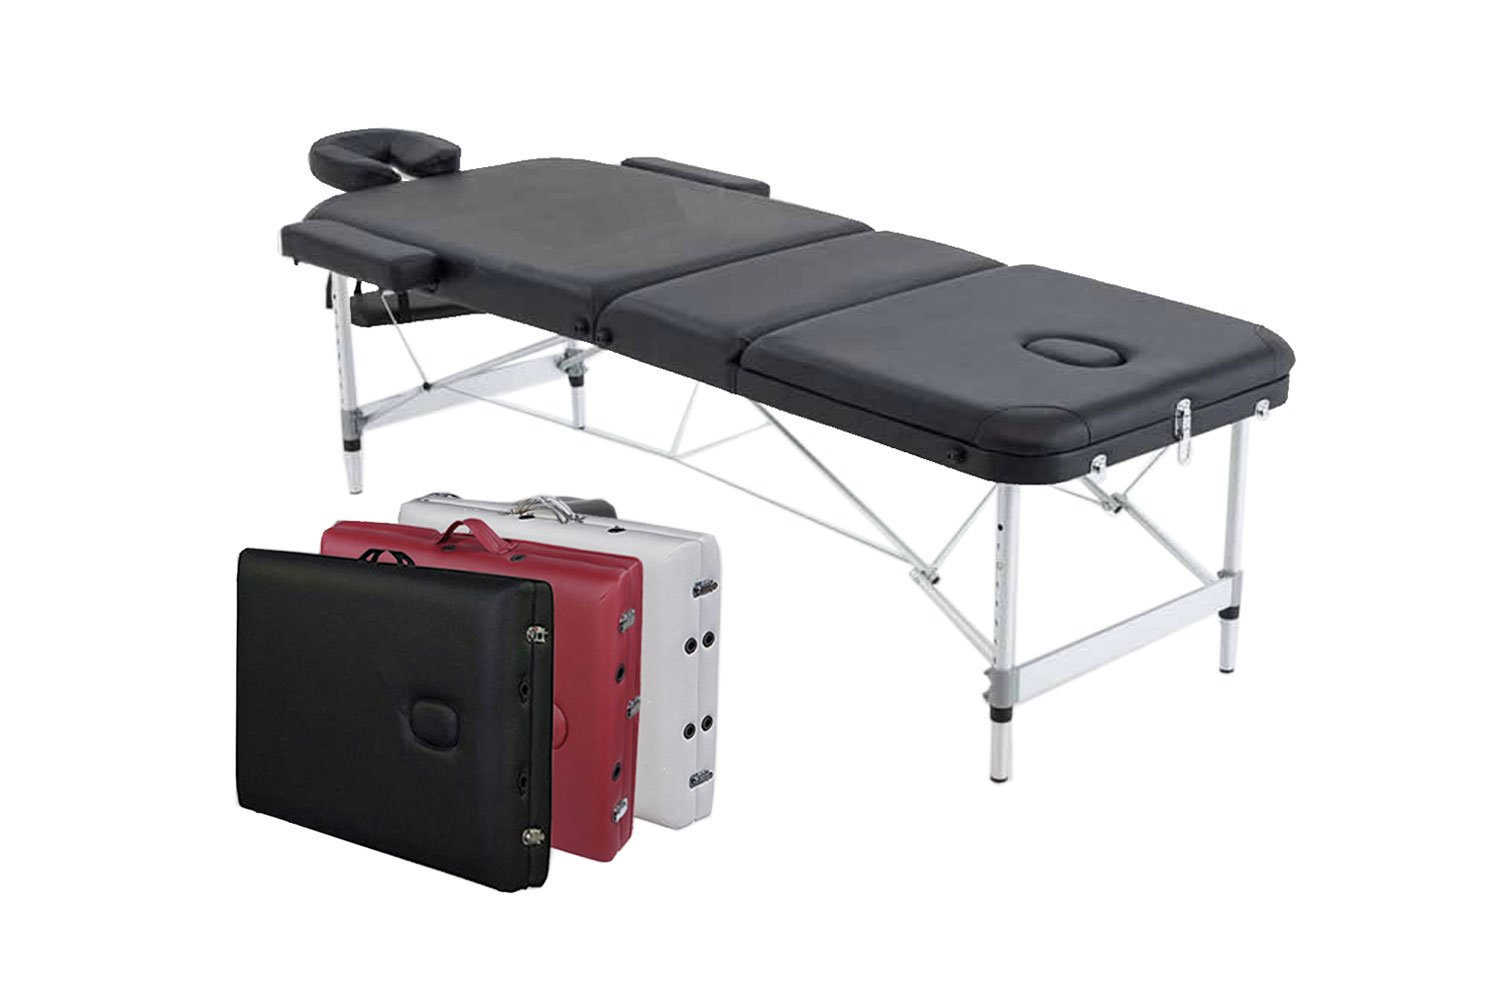 Angel 3-Section Aluminum 84L Portable Massage Table Facial SPA Bed Tattoo w/Free Carry Case (Black) Angel Canada